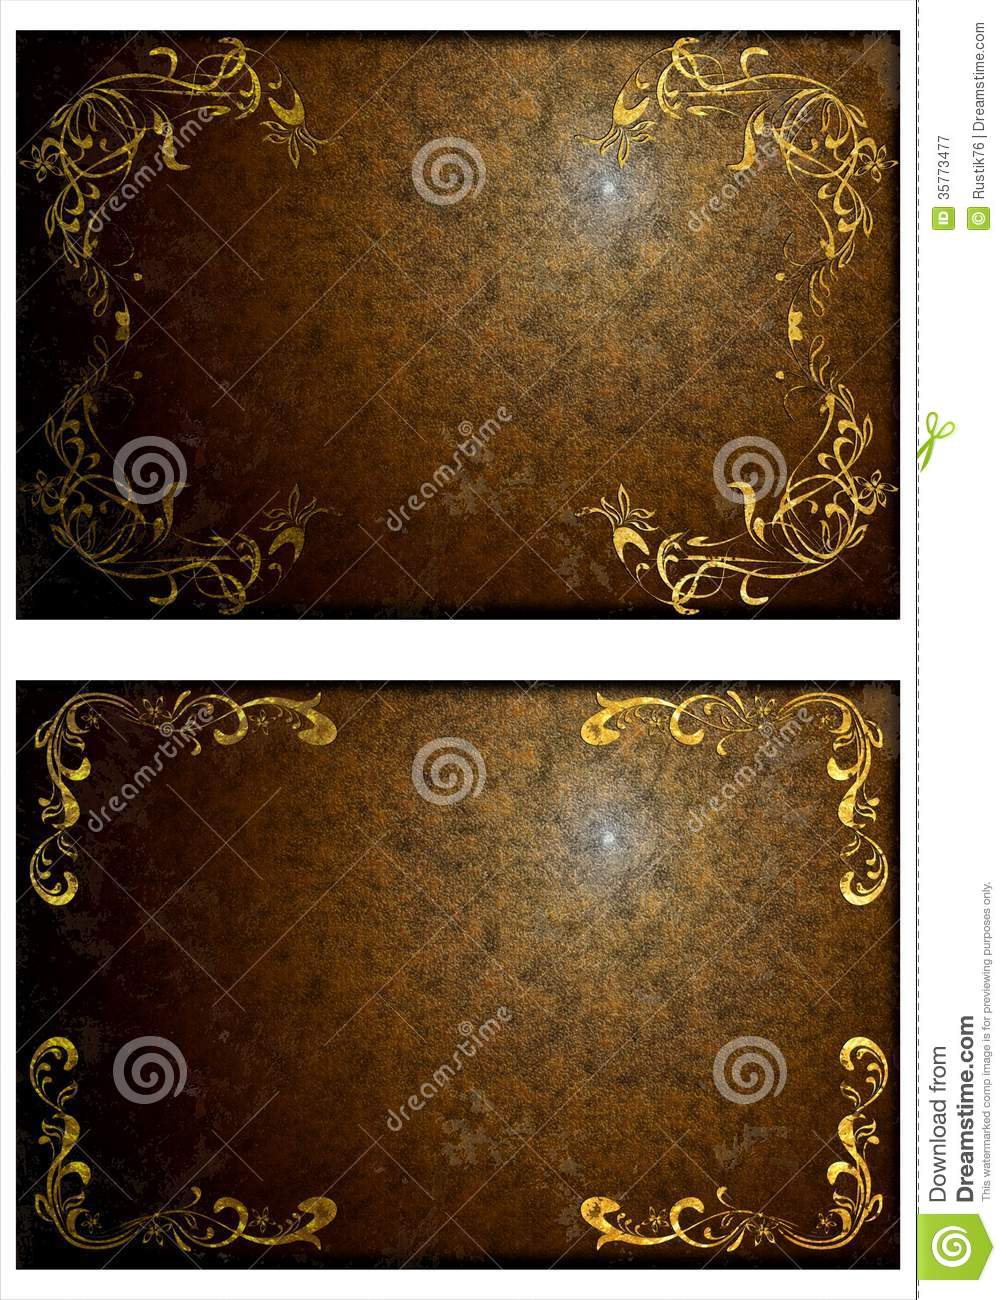 Book Cover Images Royalty Free : The cover of an old book royalty free stock